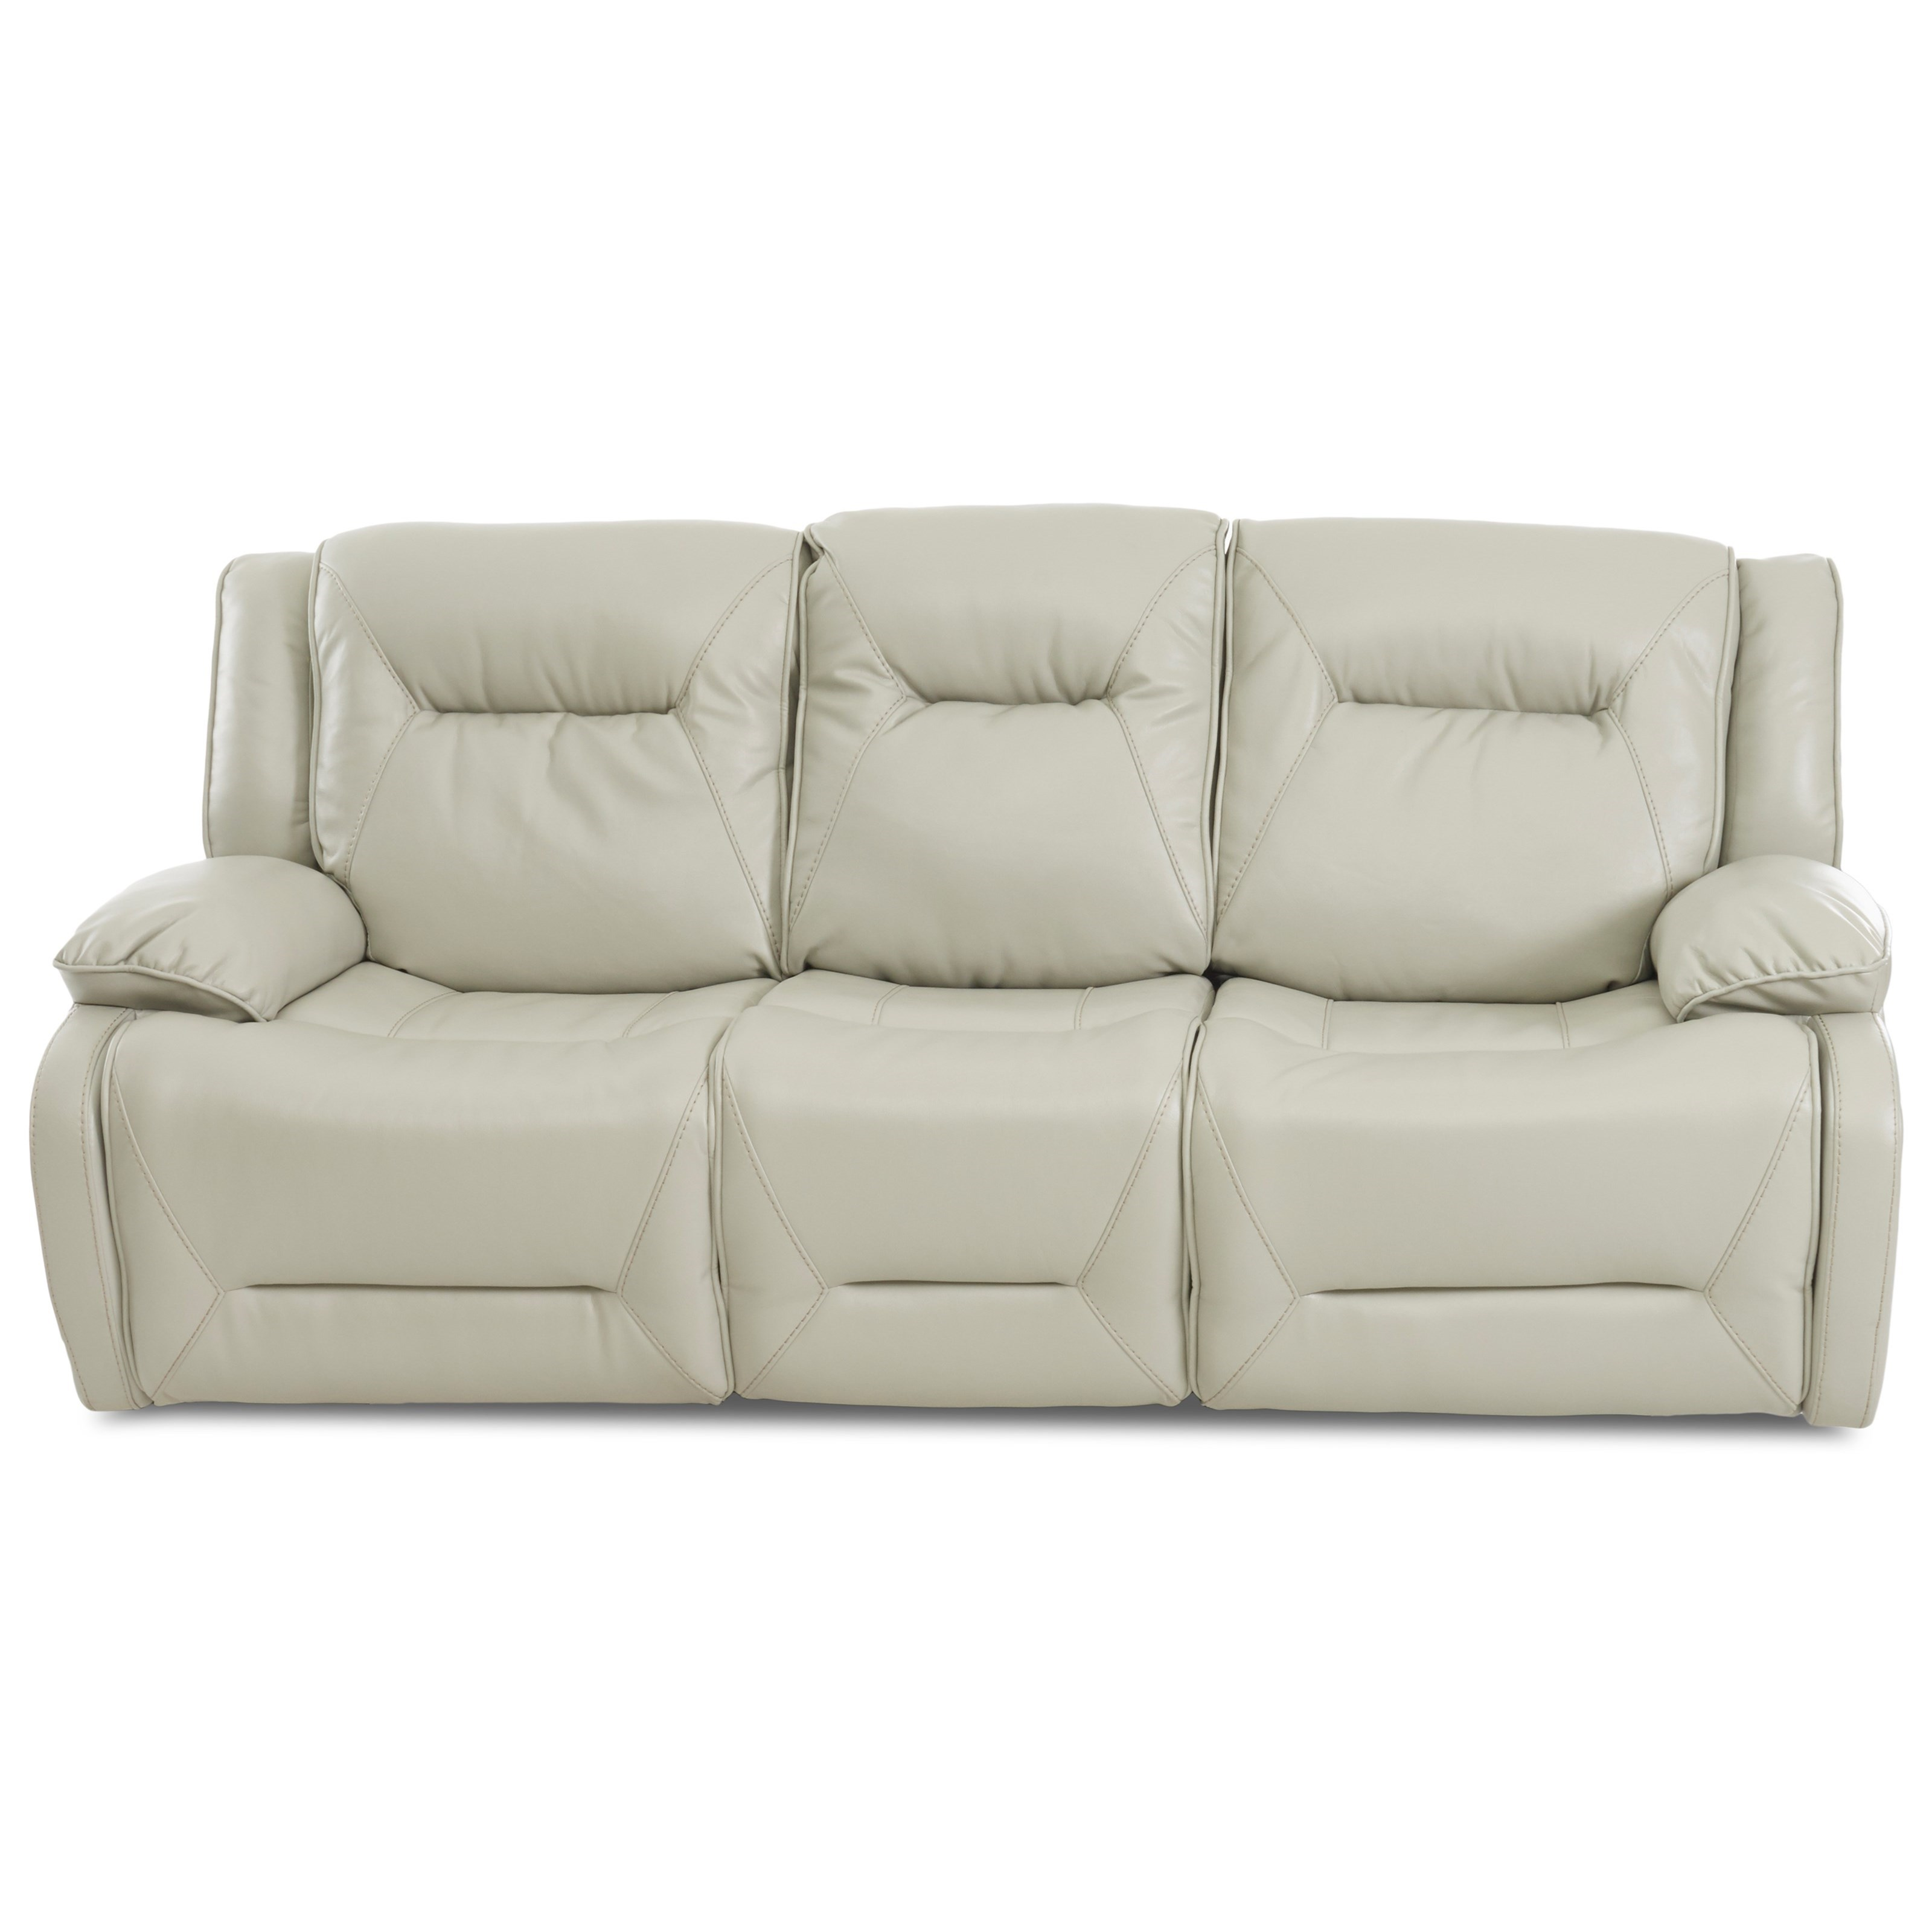 Dansby Reclining Sofa by Klaussner International at Northeast Factory Direct